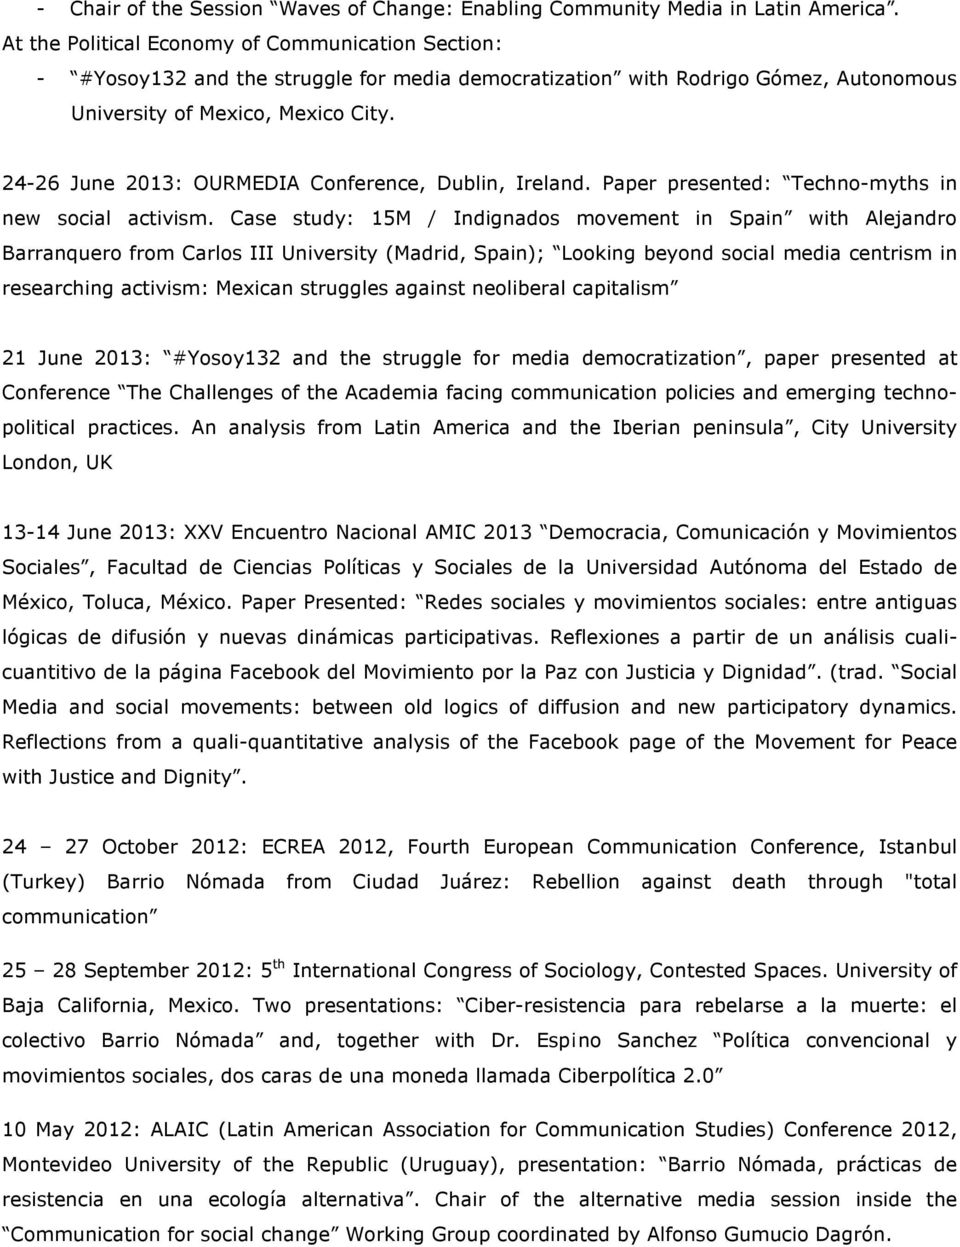 24-26 June 2013: OURMEDIA Conference, Dublin, Ireland. Paper presented: Techno-myths in new social activism.